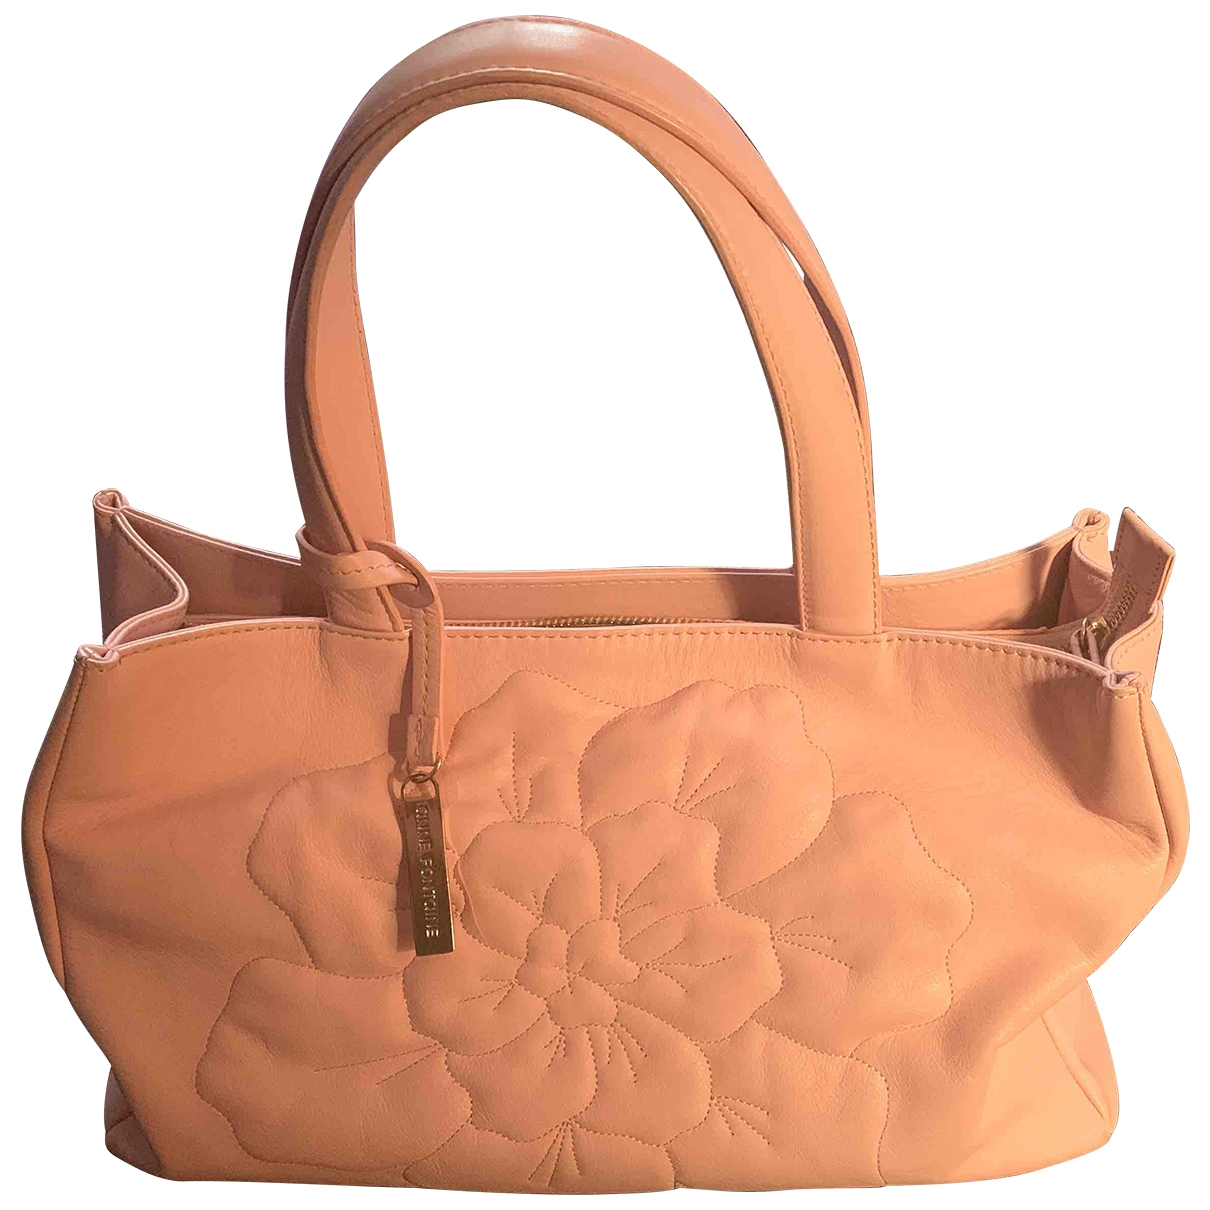 Anne Fontaine \N Pink Leather handbag for Women \N